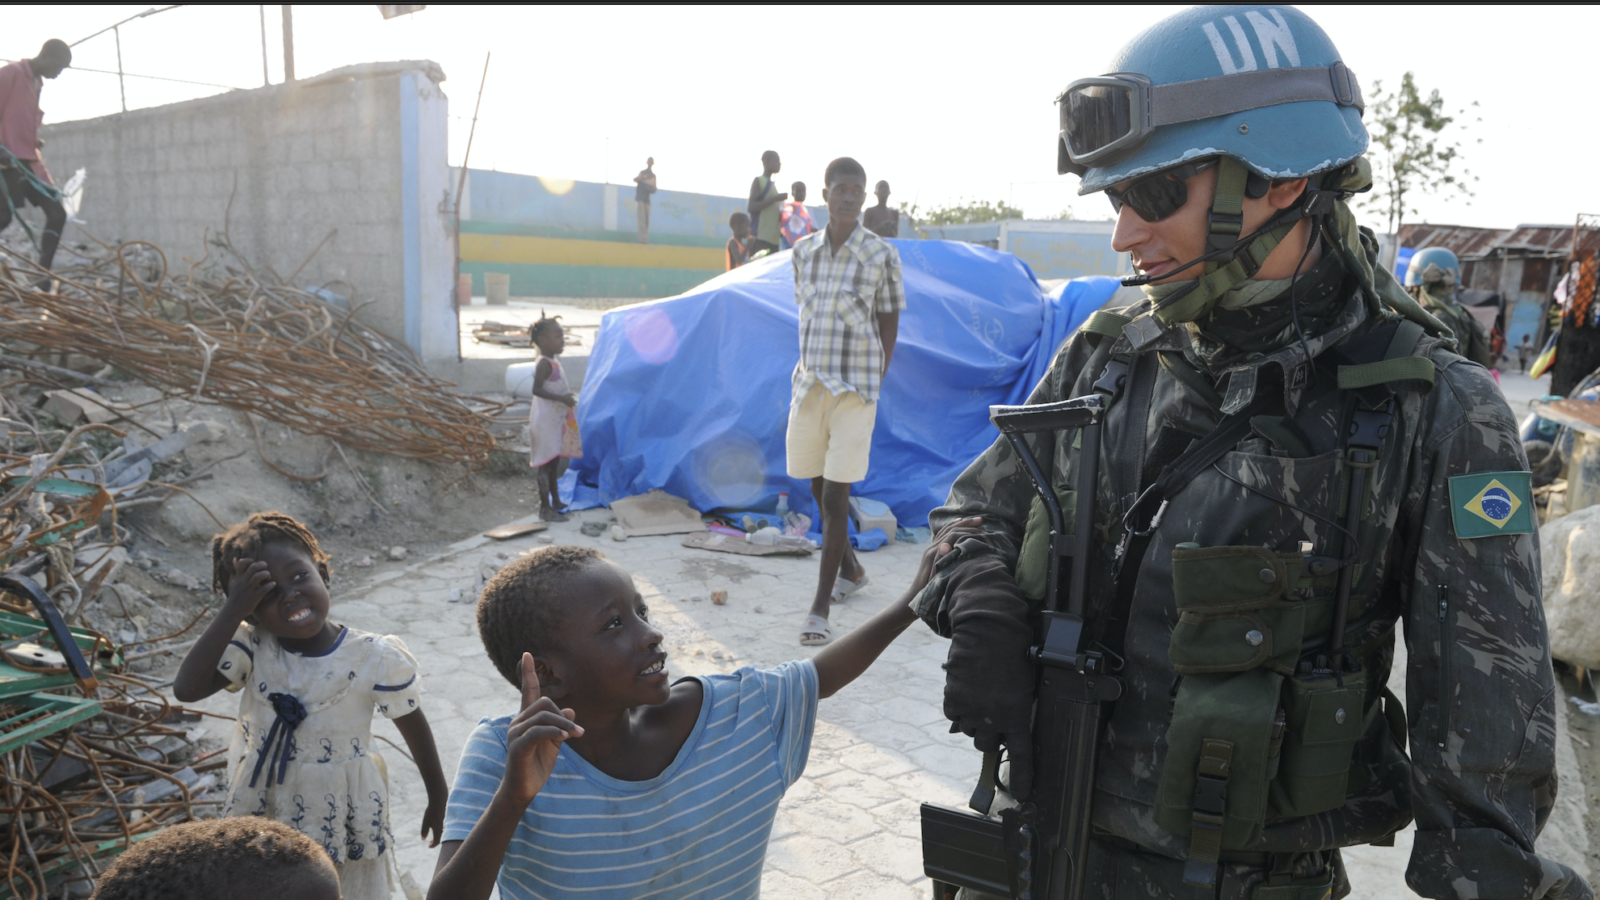 A tall male wearing a UN peacekeeper helmet says hello to some small children in Brazil.